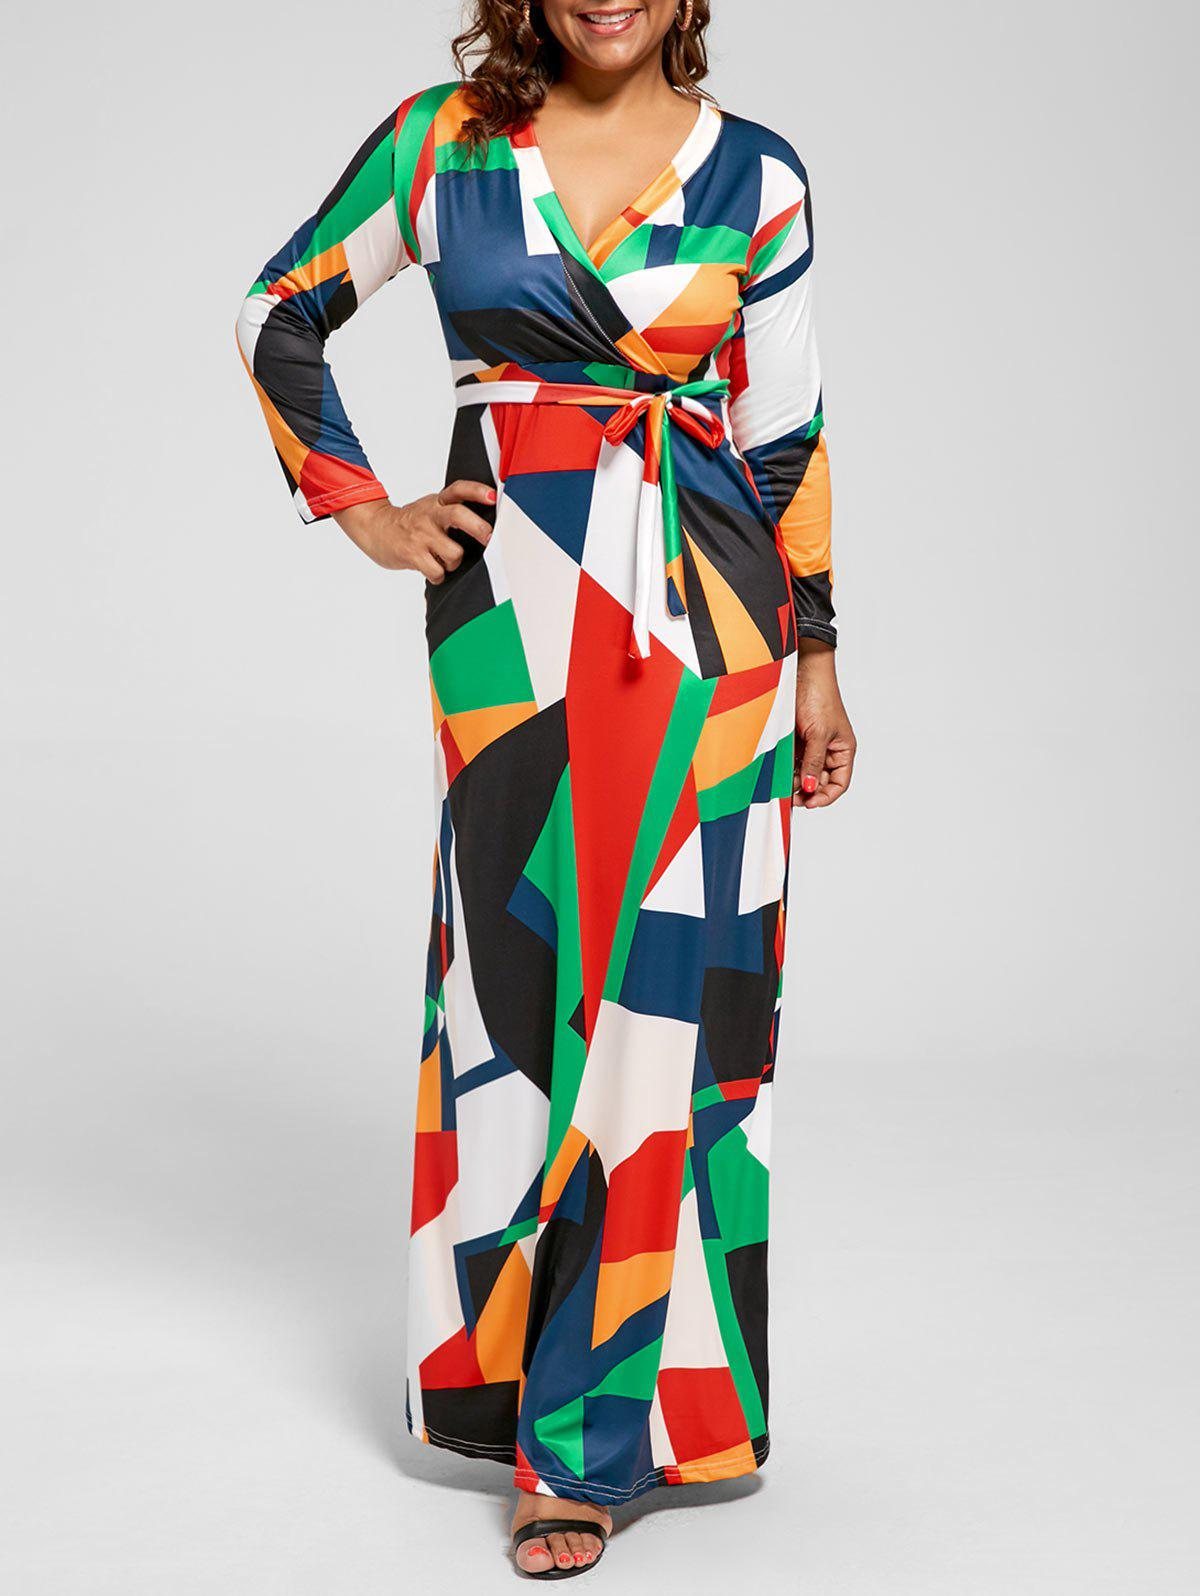 V Neck Color Block Long Plus Size DressWOMEN<br><br>Size: 5XL; Color: GREEN; Style: Cute; Material: Polyester; Silhouette: A-Line; Dresses Length: Floor-Length; Neckline: V-Neck; Sleeve Length: Long Sleeves; Pattern Type: Others; With Belt: Yes; Season: Fall,Spring; Weight: 0.5000kg; Package Contents: 1 x Dress  1 x Belt;